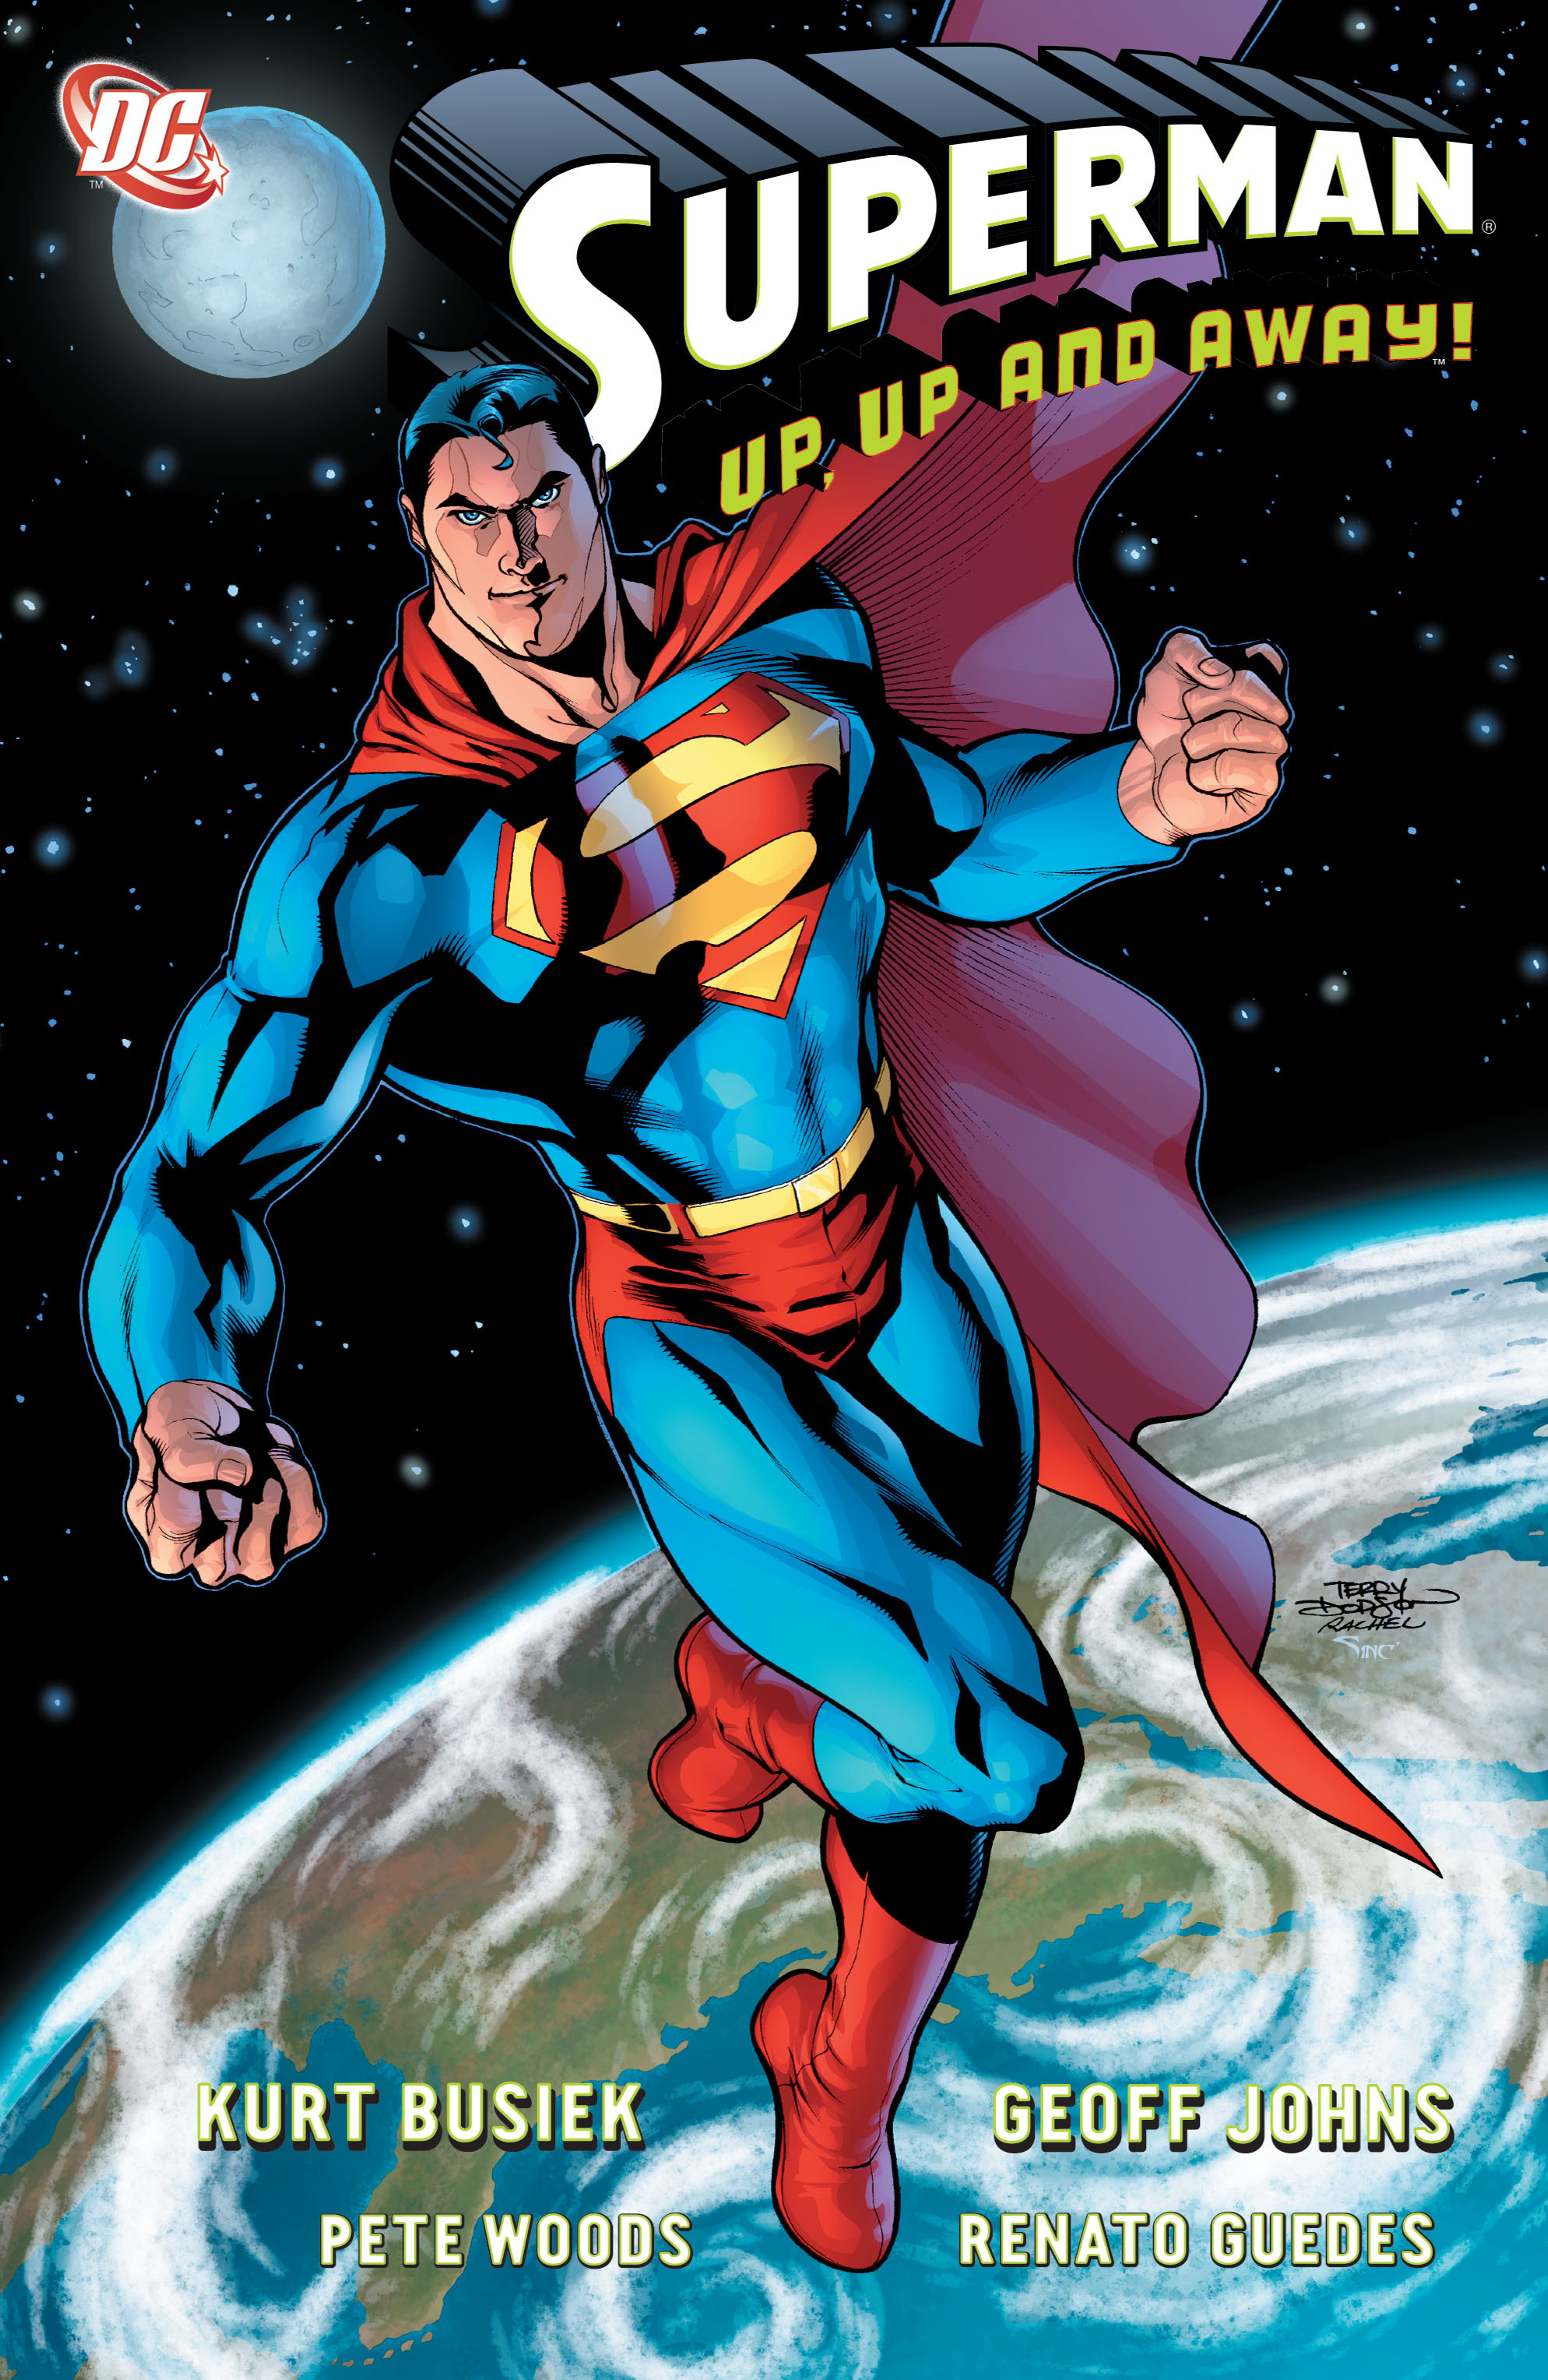 Superman: Up, Up and Away! Full Page 1